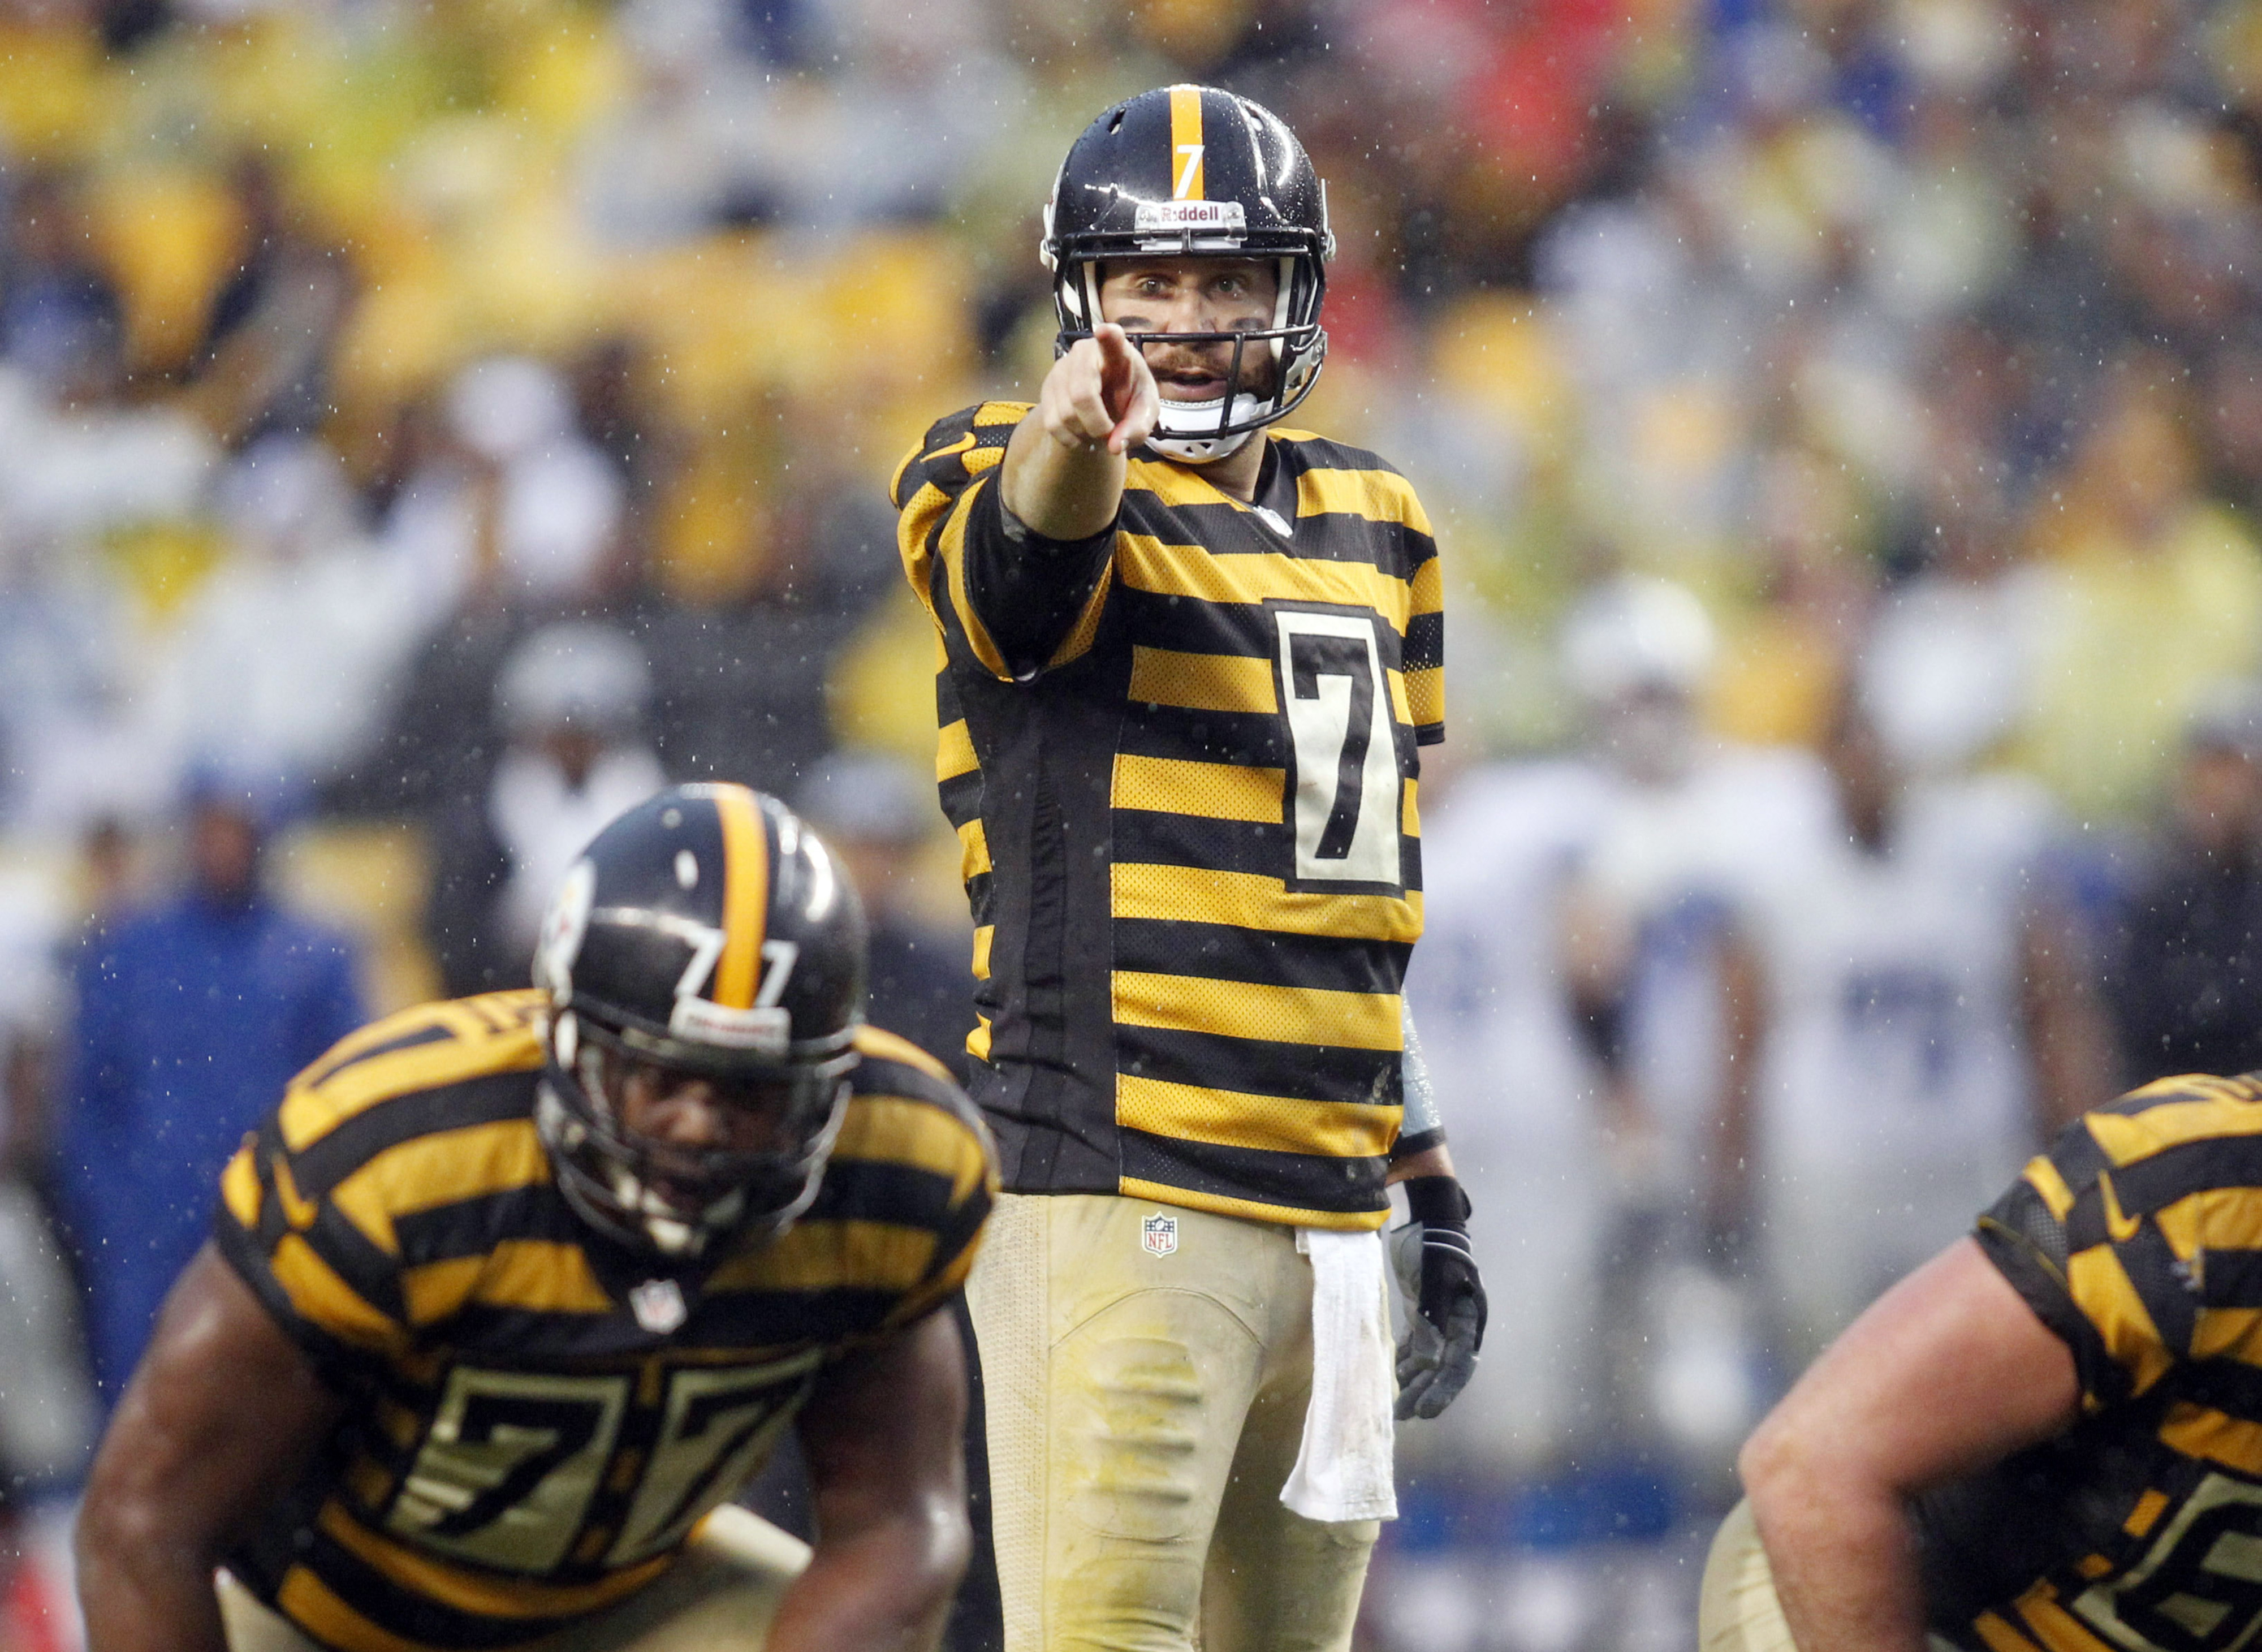 Ben Roethlisberger contract: Steelers QB willing to restructure deal to stay in Pittsburgh